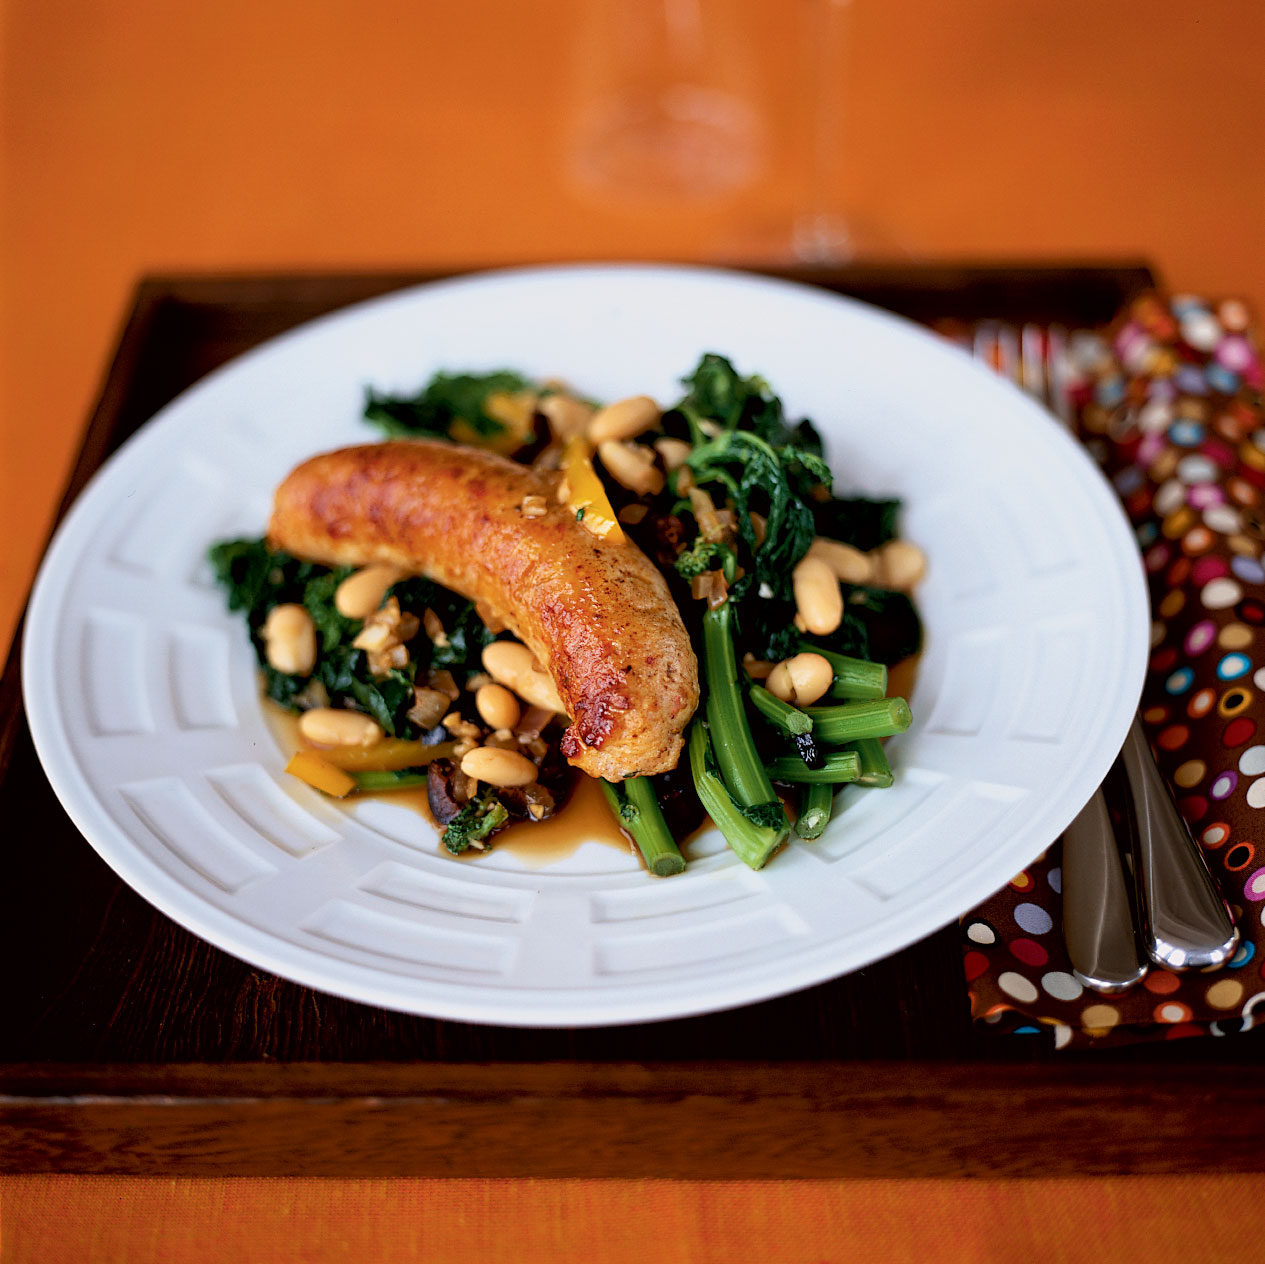 Garlicky Broccoli Rabe with Sausage and Peppers